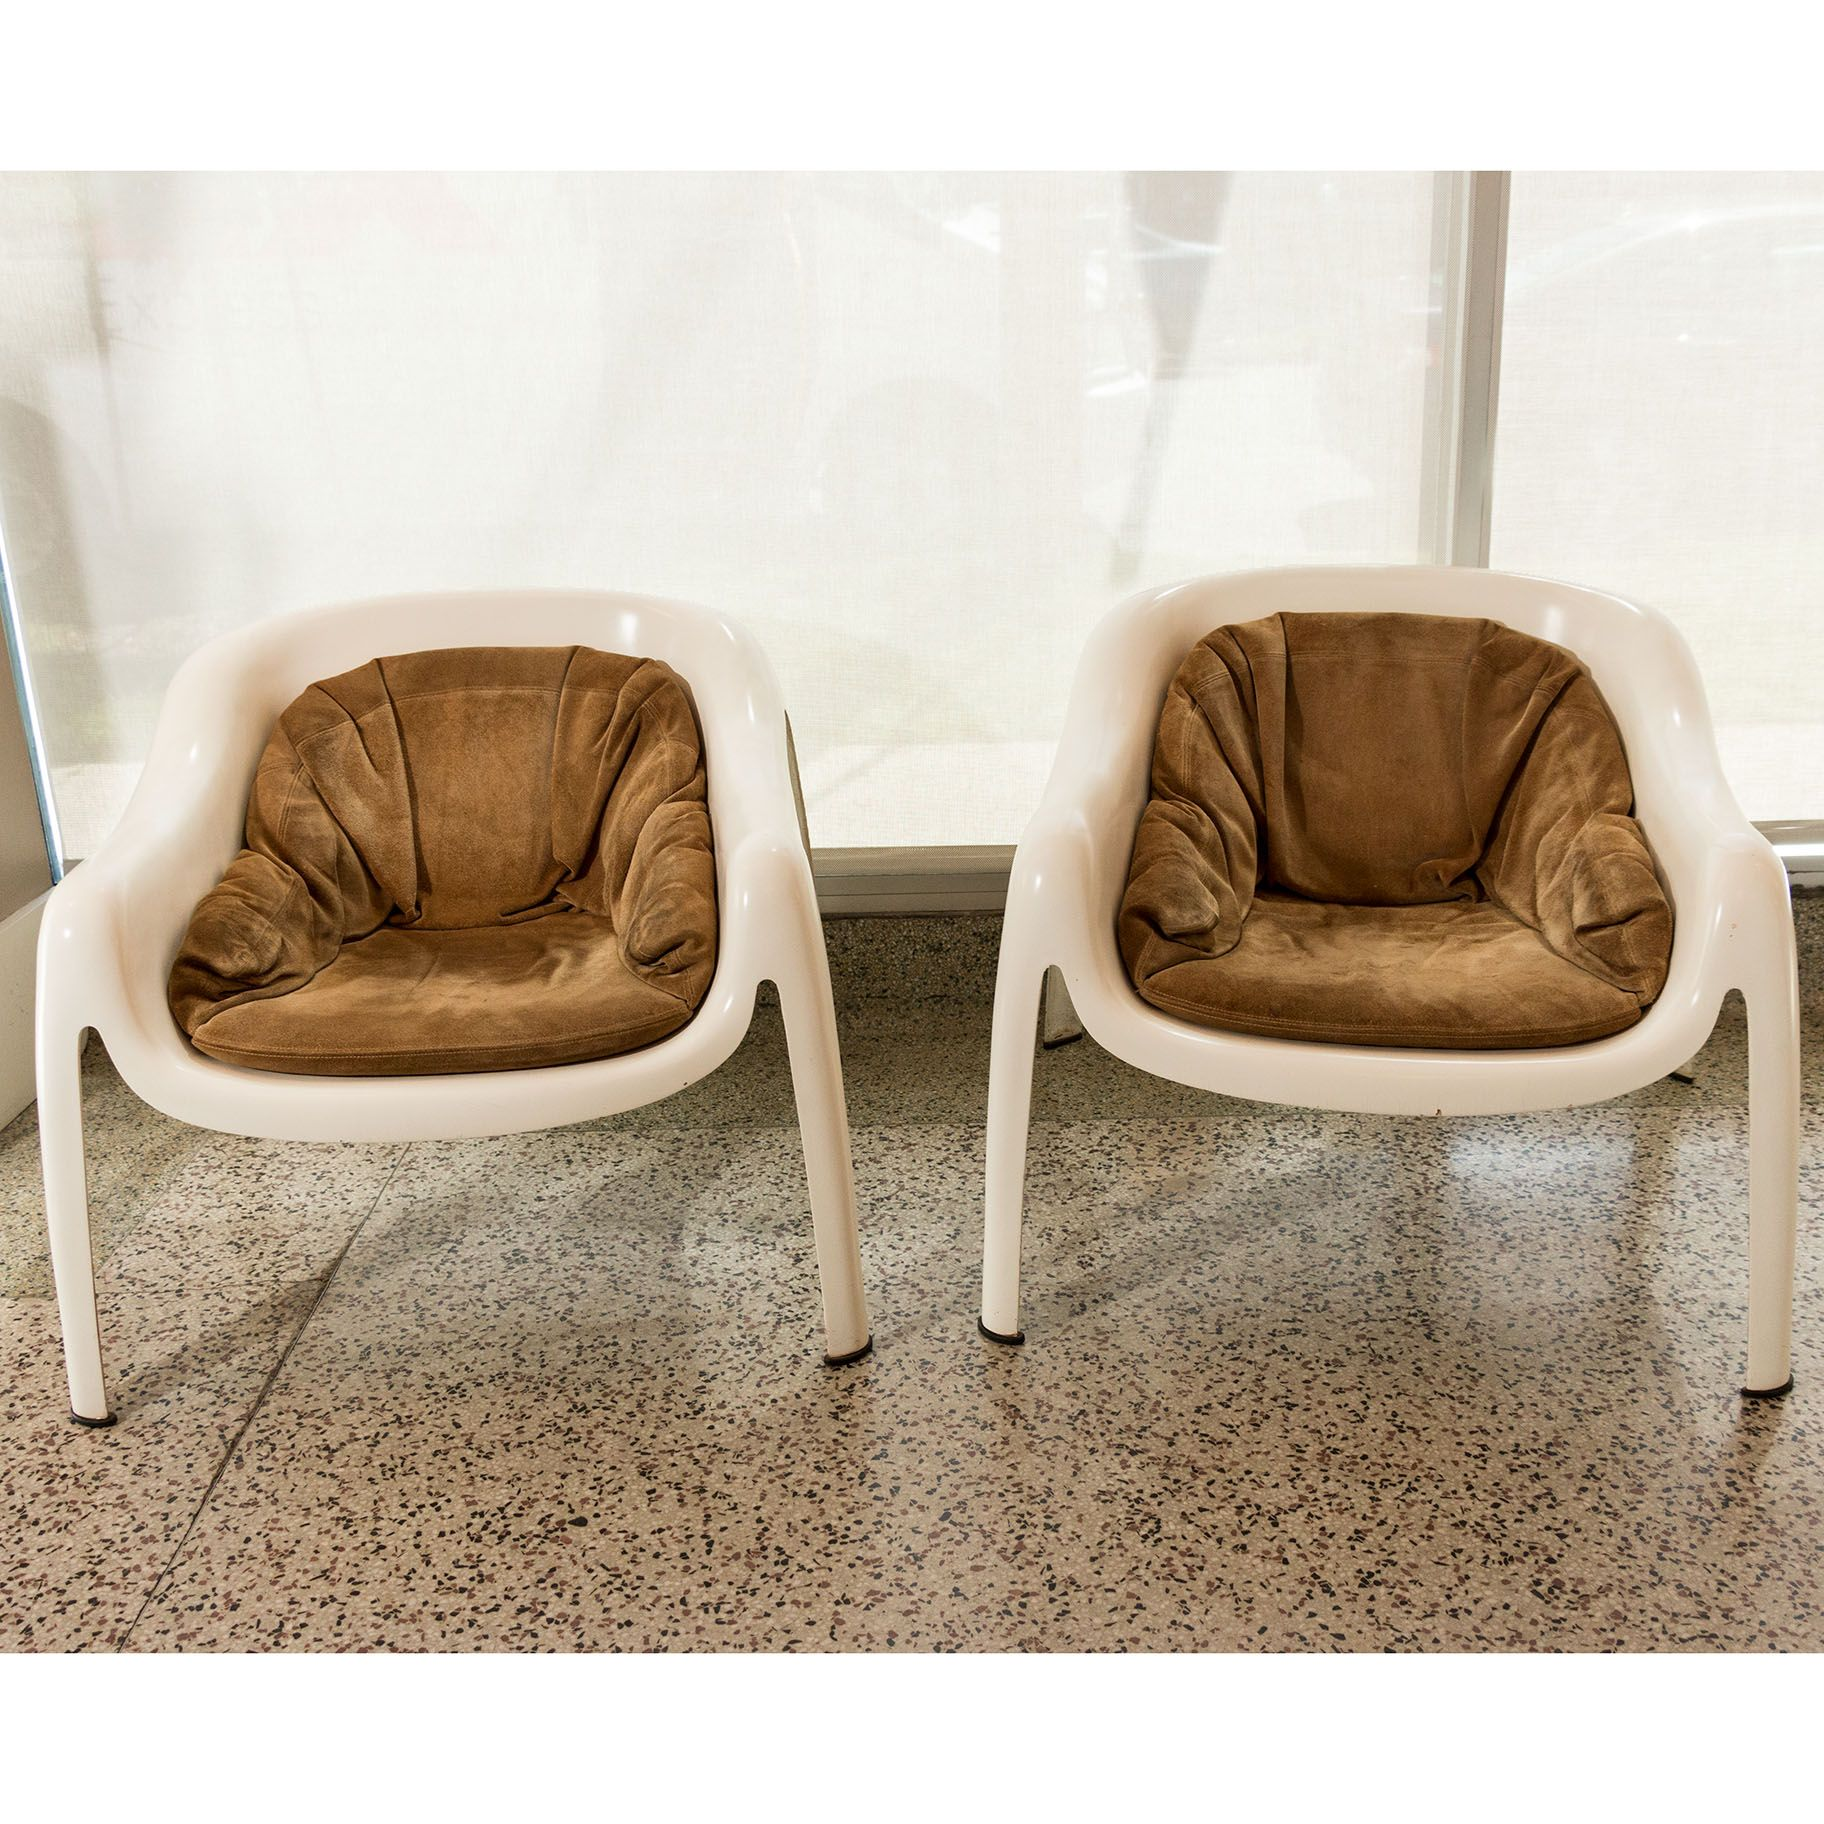 Pair Of 1960s Mid Century Fiberglass Chairs With Suede Cushions